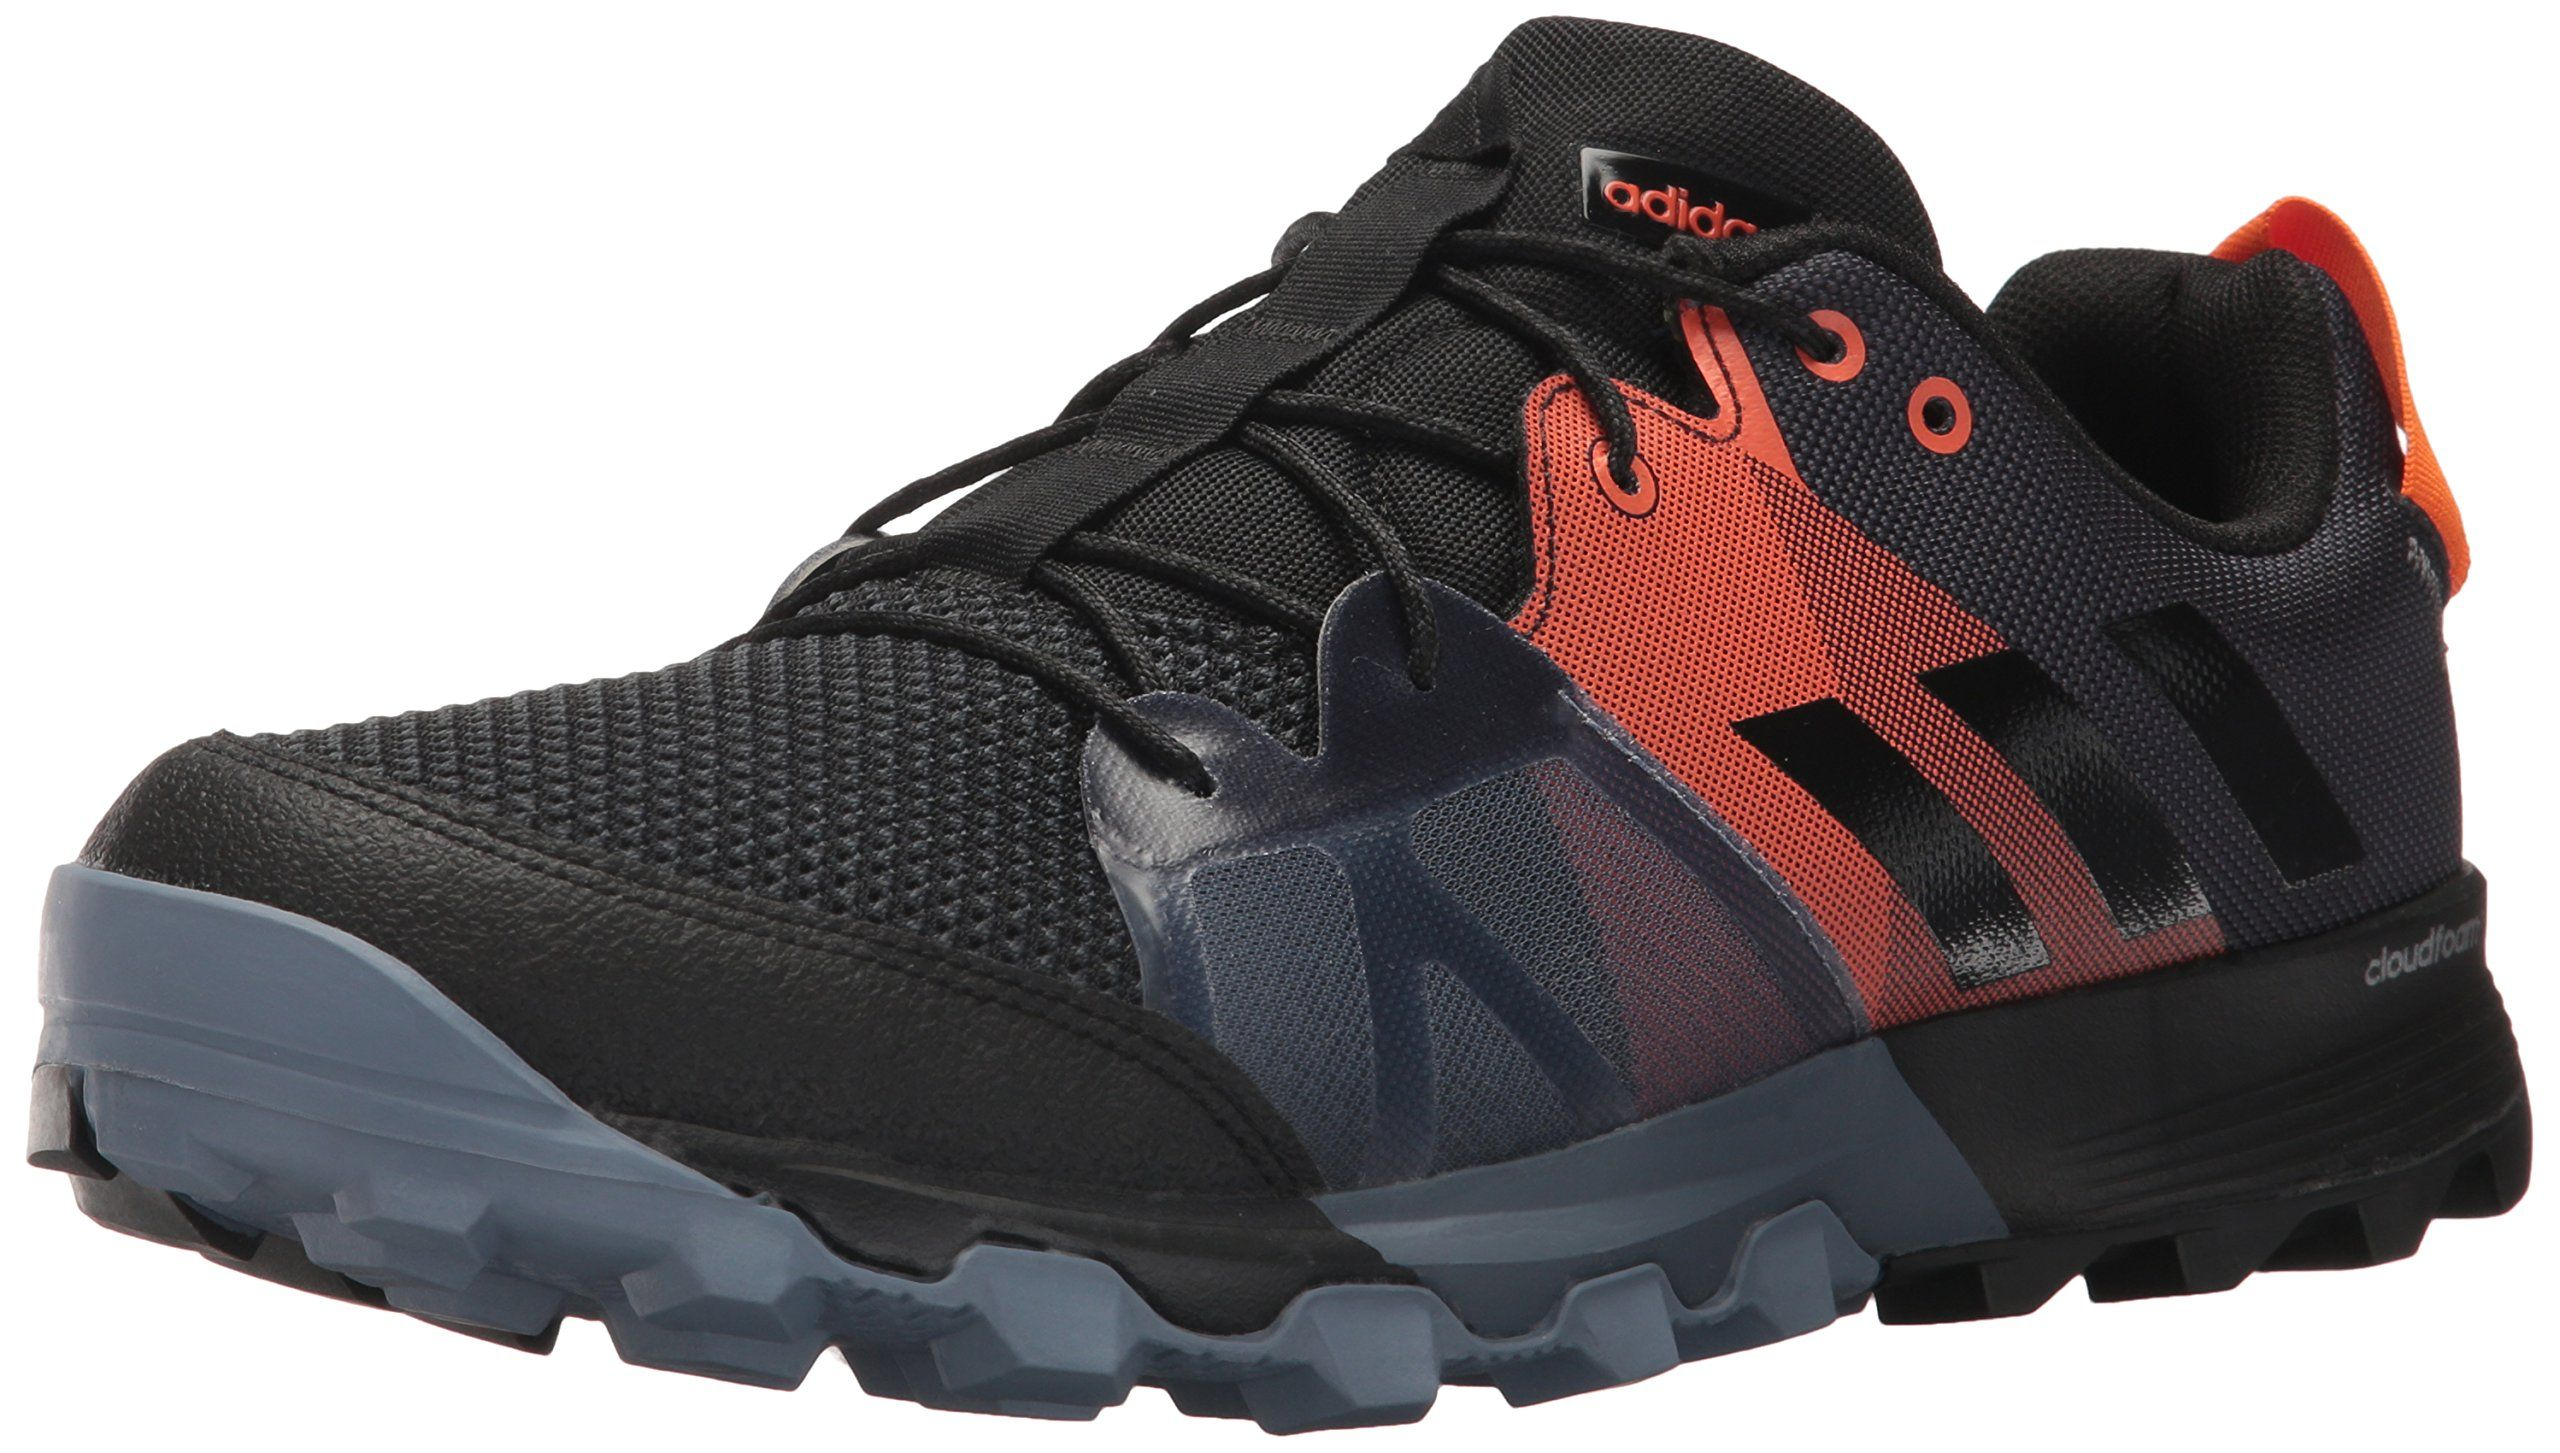 Adidas Duramo 5 Trail Running Shoes Men\u0027s Size 12 NEW | Trail running shoes,  Running shoes and Running